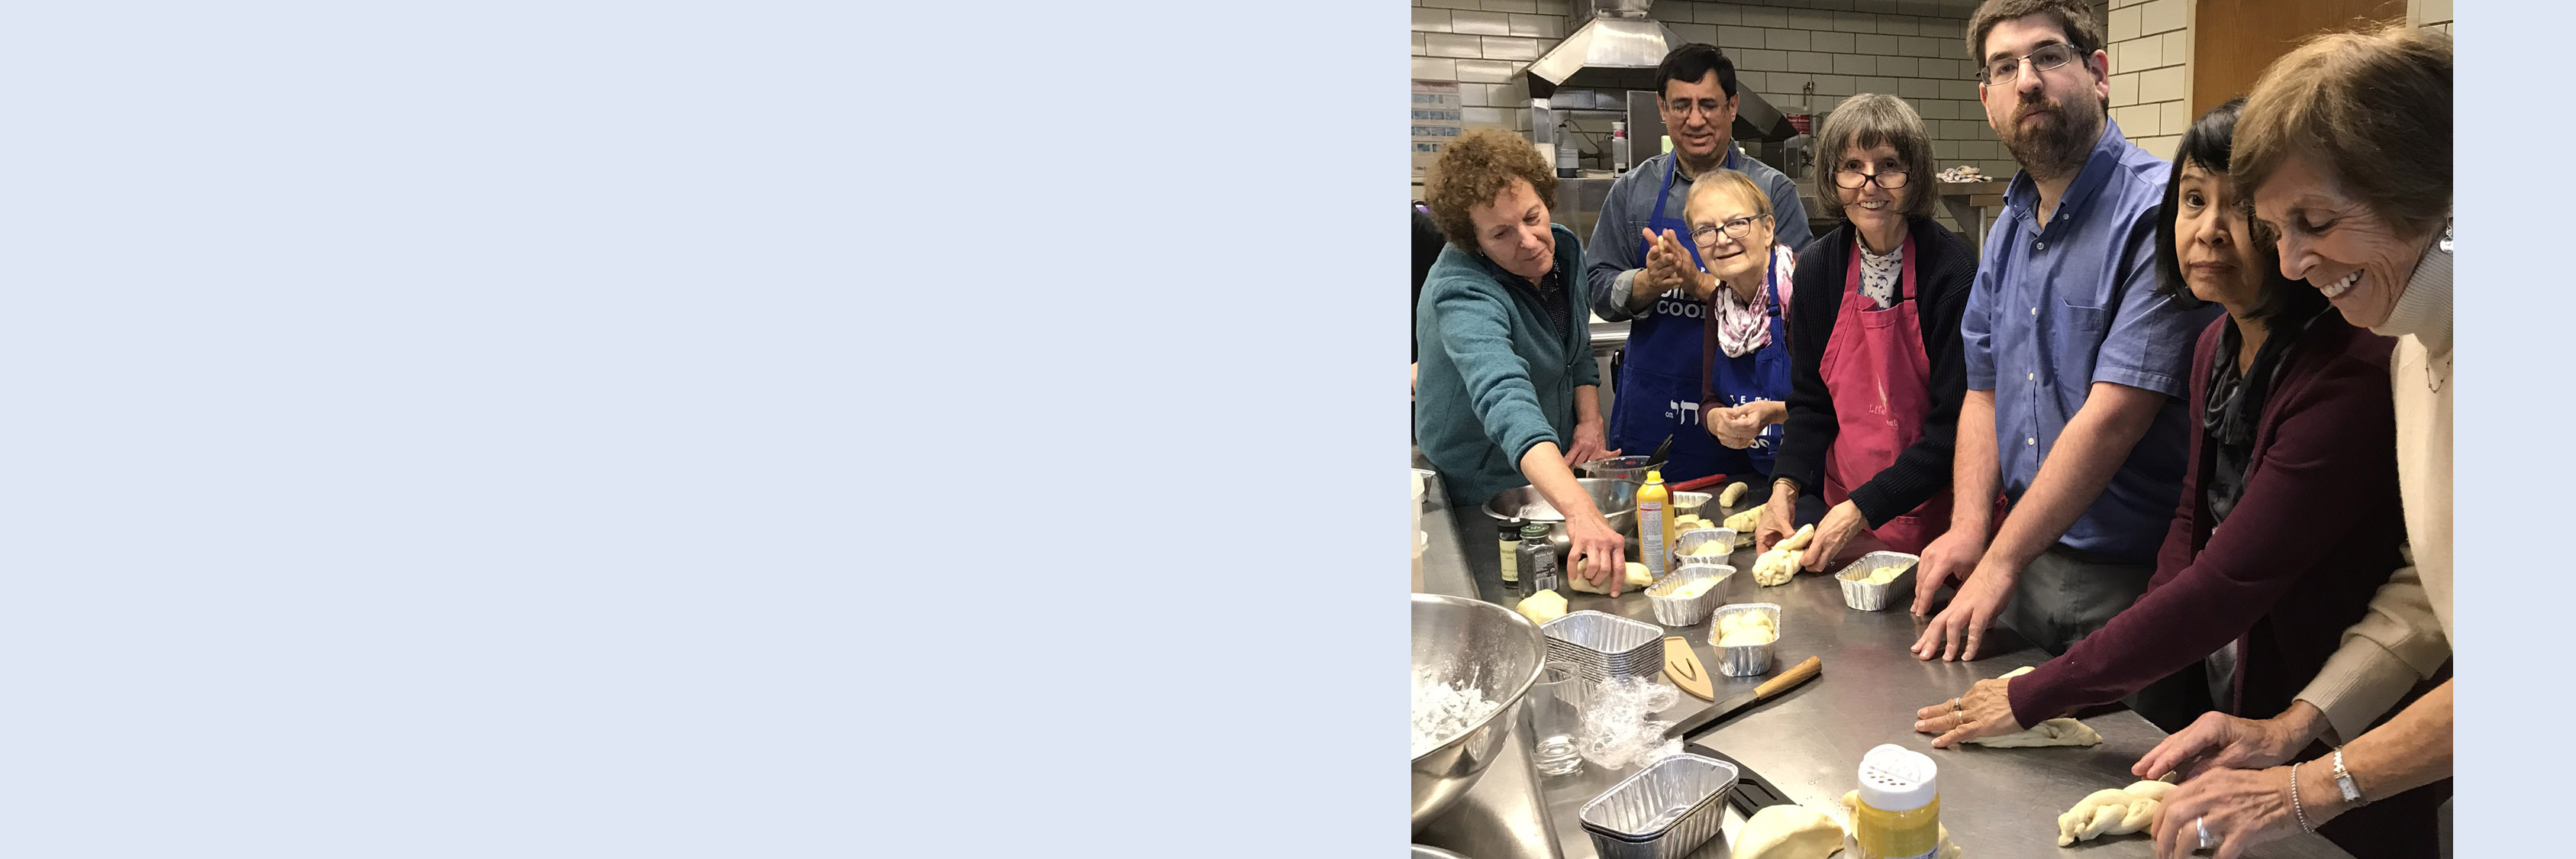 """<a href=""""https://www.templesinaipgh.org/event/WoTSCookingMay2021.html""""                                     target="""""""">                                                                 <span class=""""slider_title"""">                                     WoTS Cooking Class with Annie Weidman                                </span>                                                                 </a>                                                                                                                                                                                       <span class=""""slider_description"""">Join us to learn a few favorites from the co-winner of the original Temple Sinai Bake Off.</span>                                                                                     <a href=""""https://www.templesinaipgh.org/event/WoTSCookingMay2021.html"""" class=""""slider_link""""                             target="""""""">                             Register Today!                            </a>"""